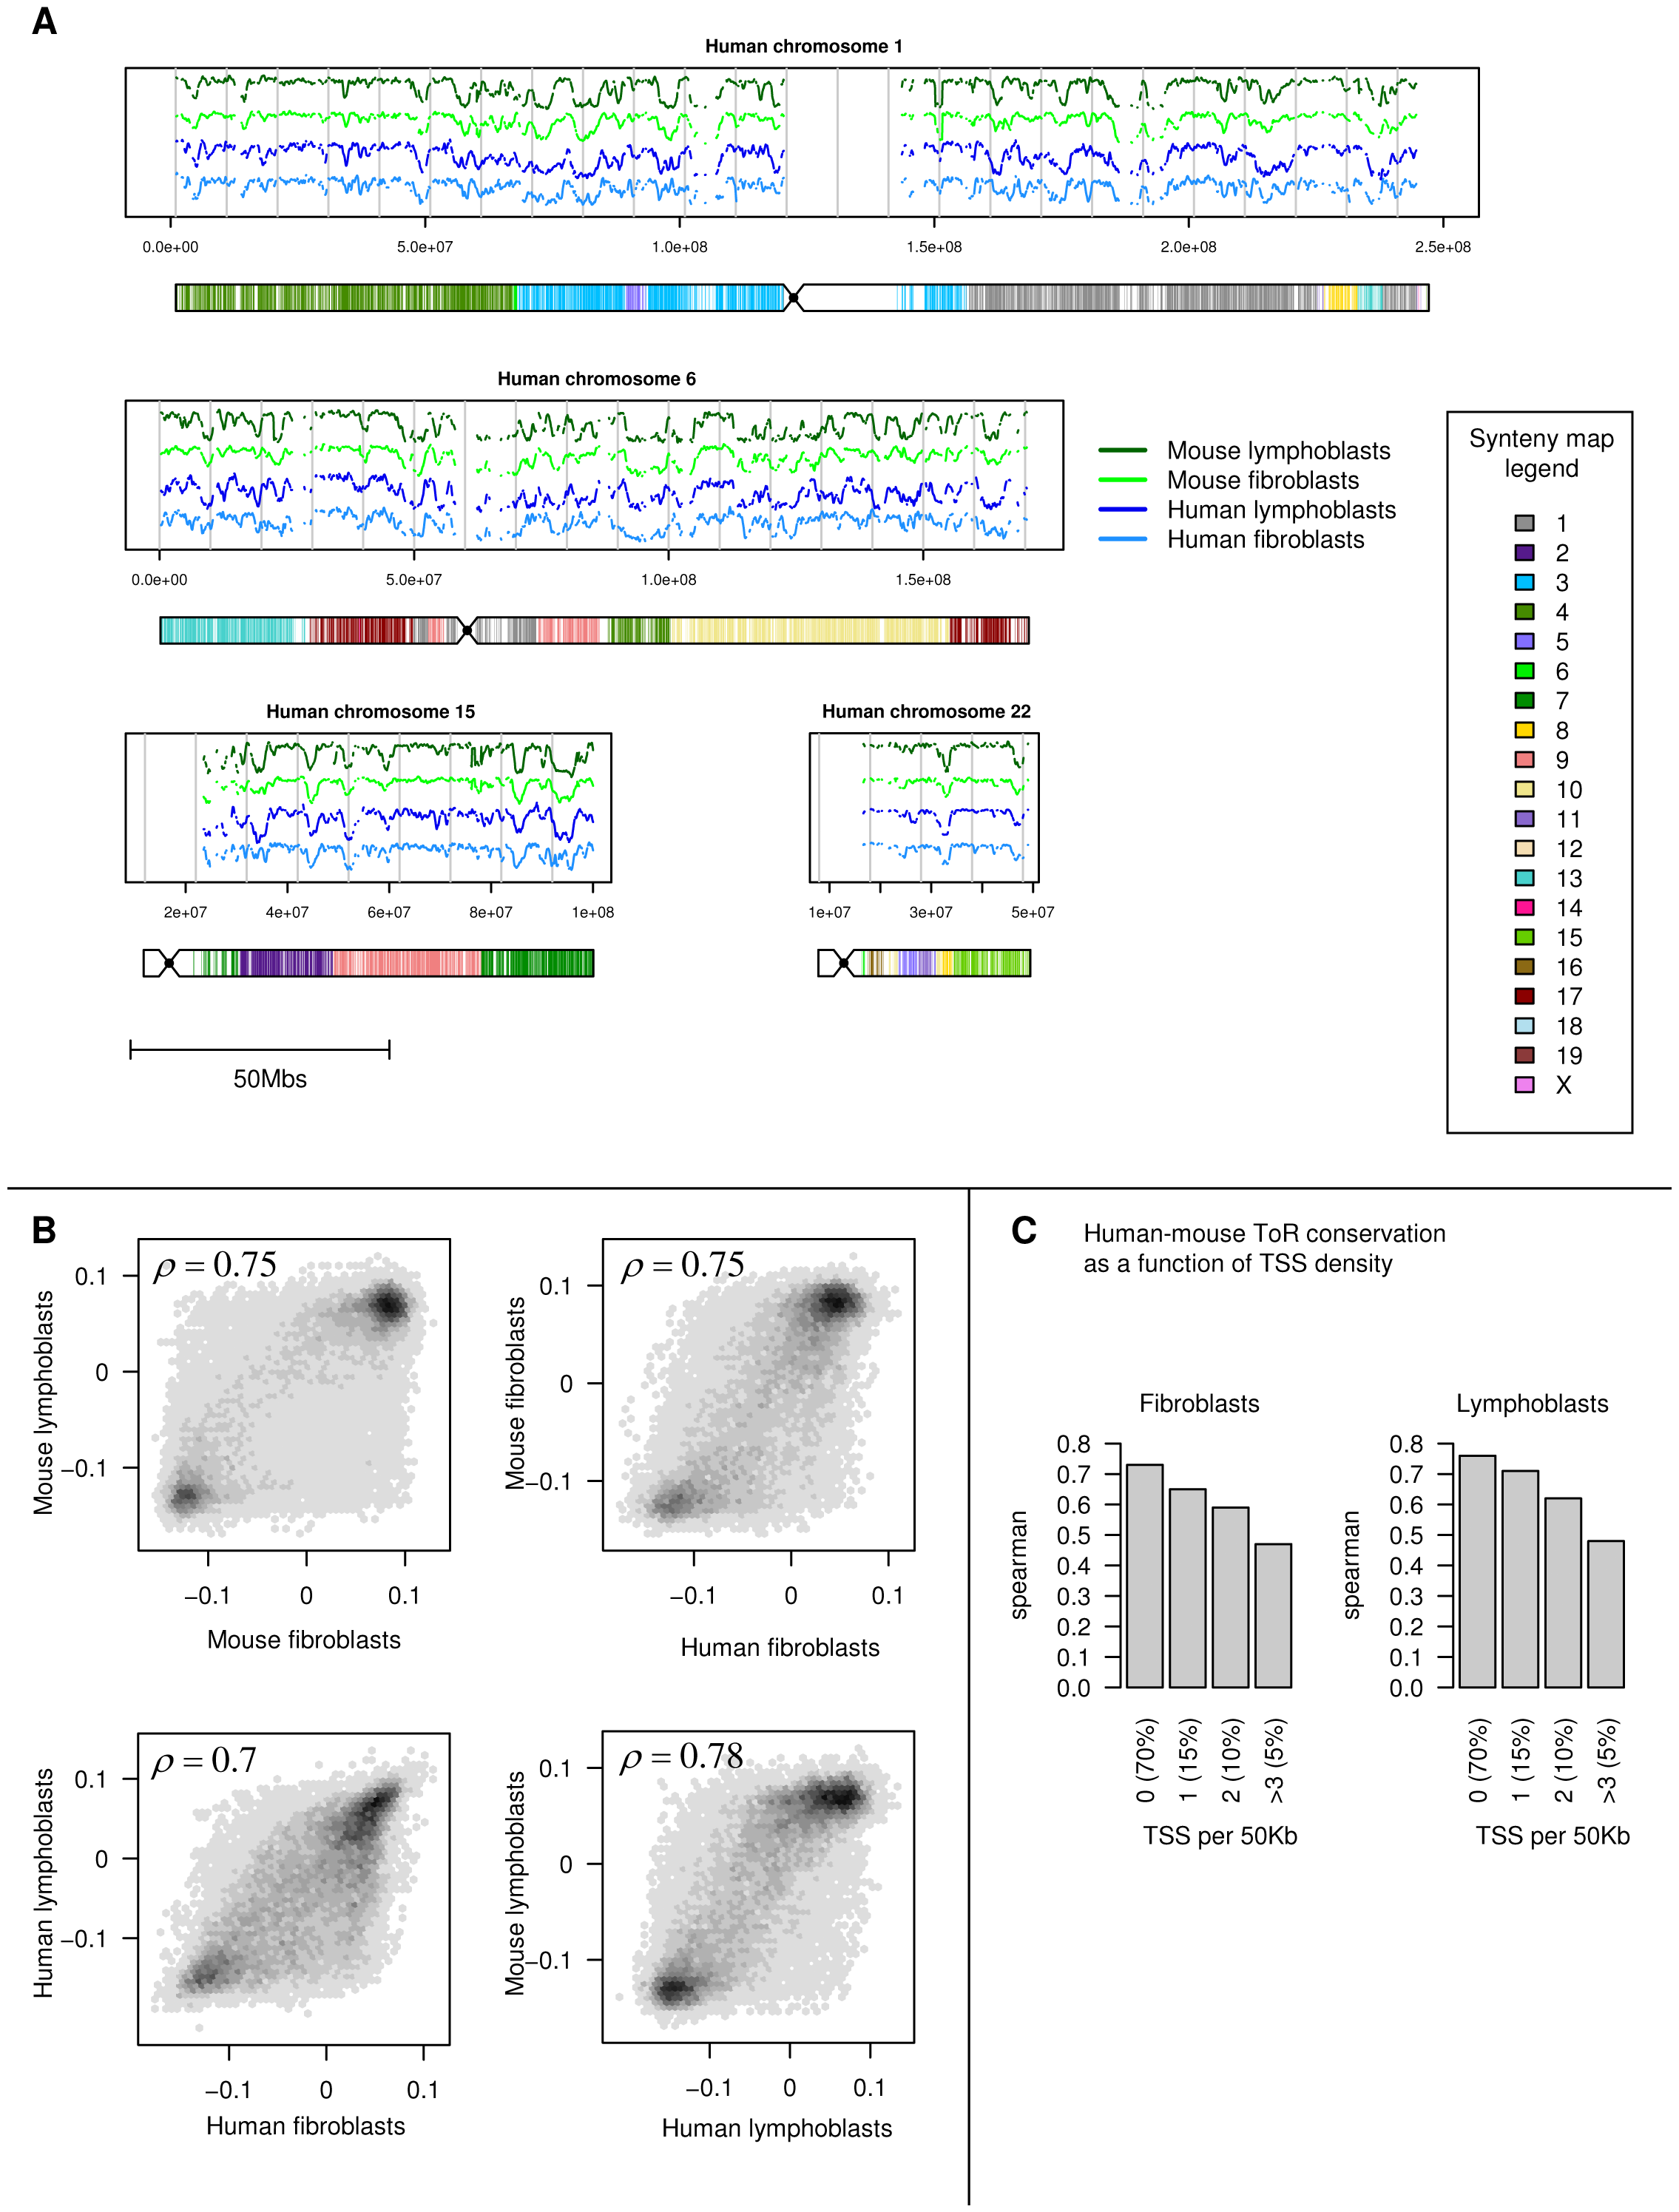 Conservation of time of replication in human and mouse cells.